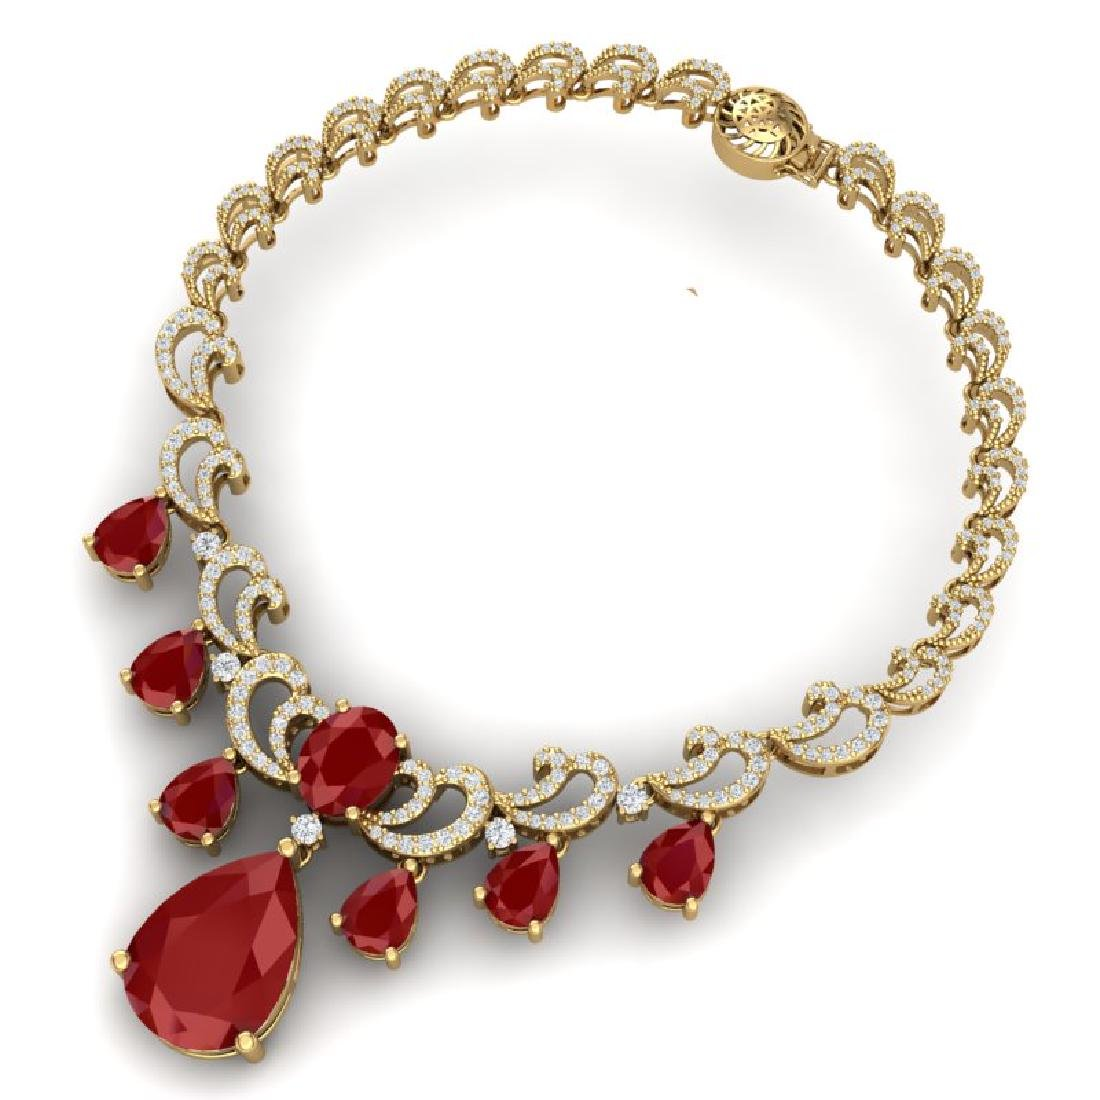 36.85 CTW Royalty Ruby & VS Diamond Necklace 18K Yellow - 3